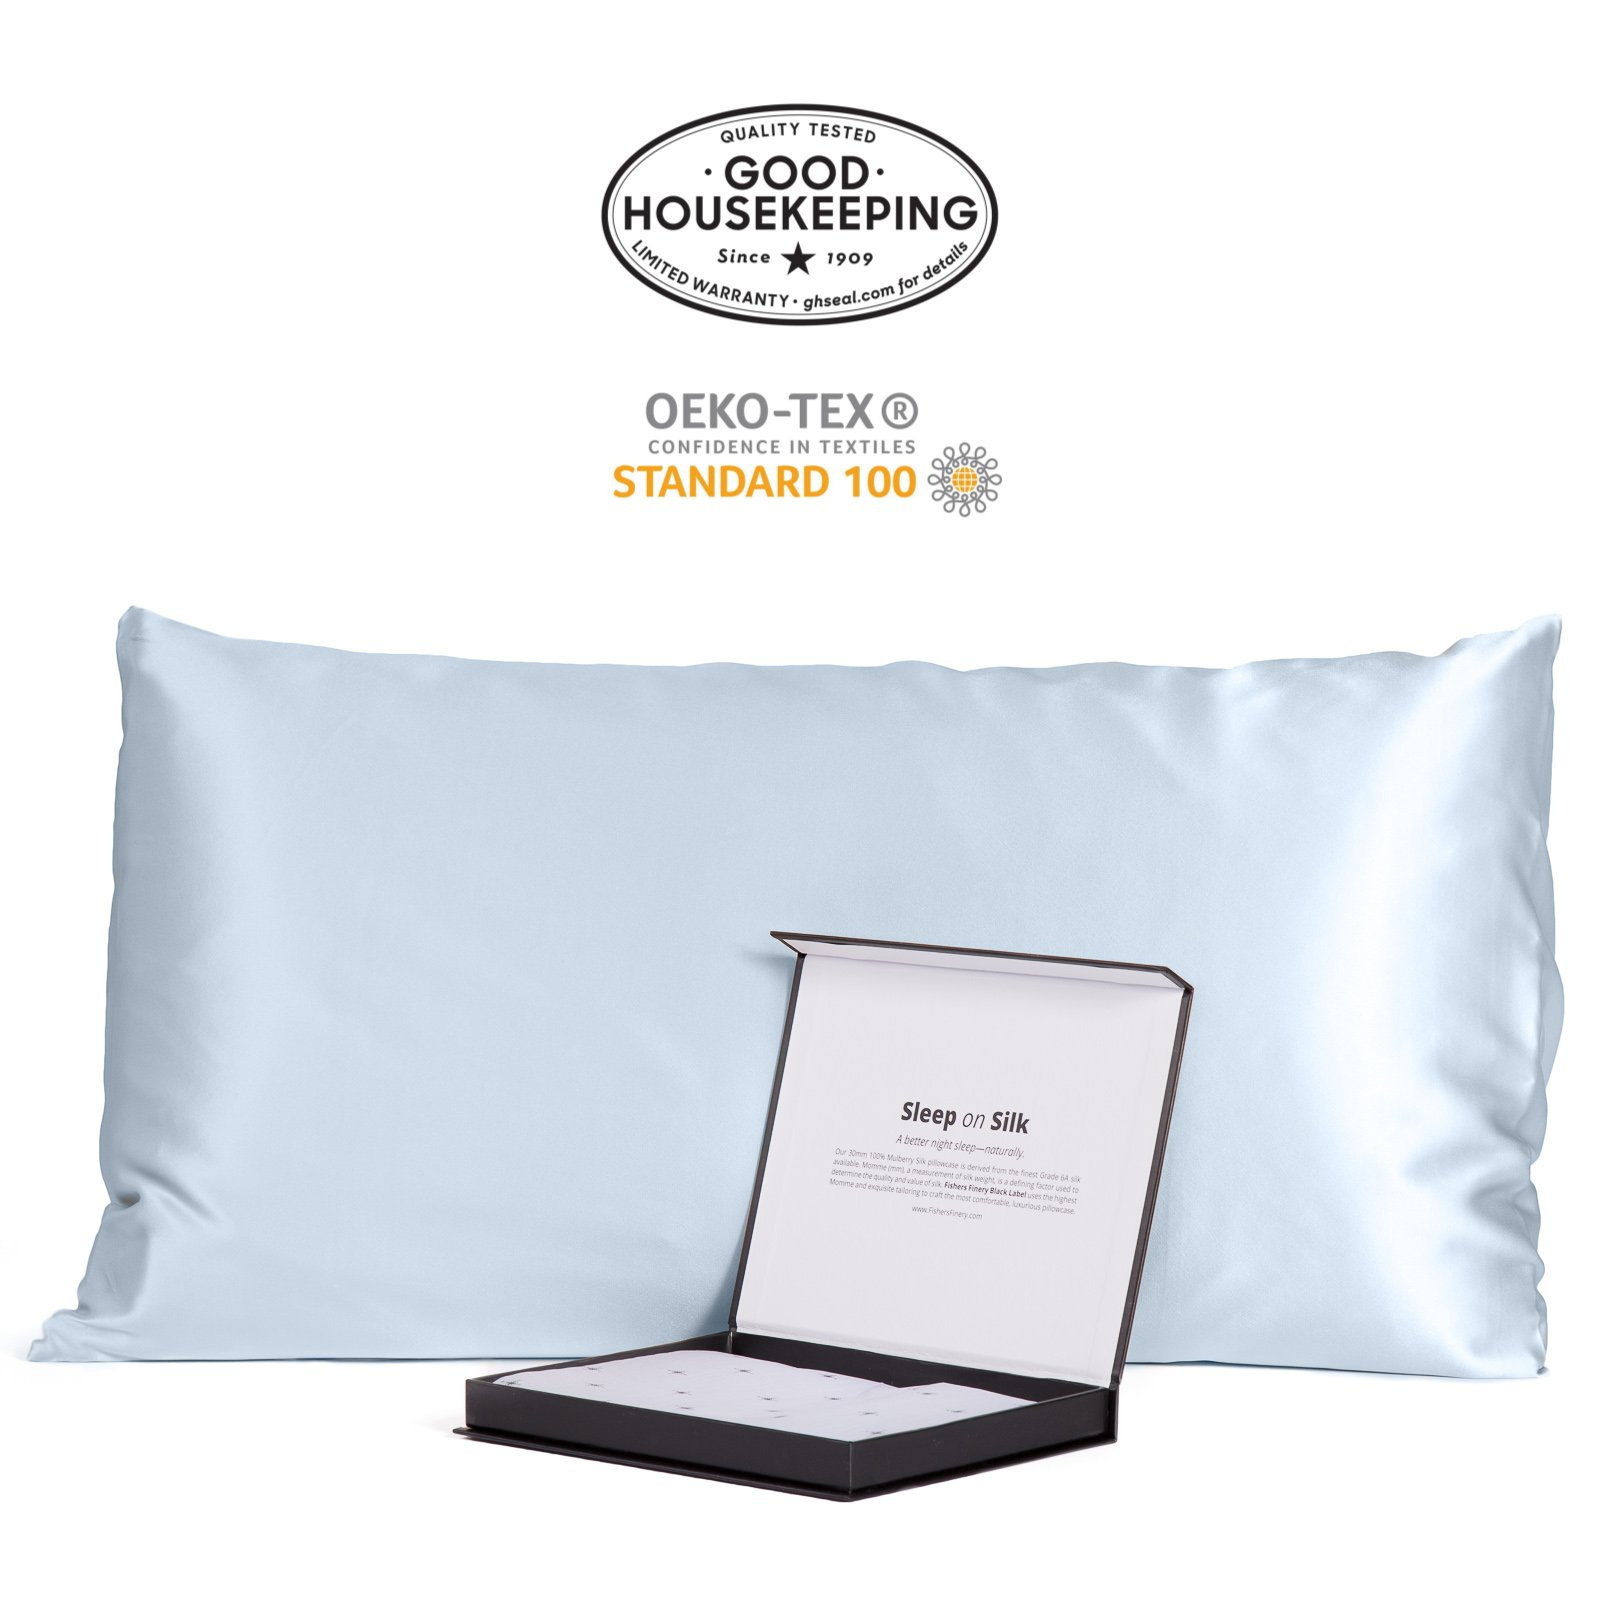 Fishers Finery 30mm 100% Pure Mulberry Silk Pillowcase Good Housekeeping Quality Tested (Lt Blue, King)